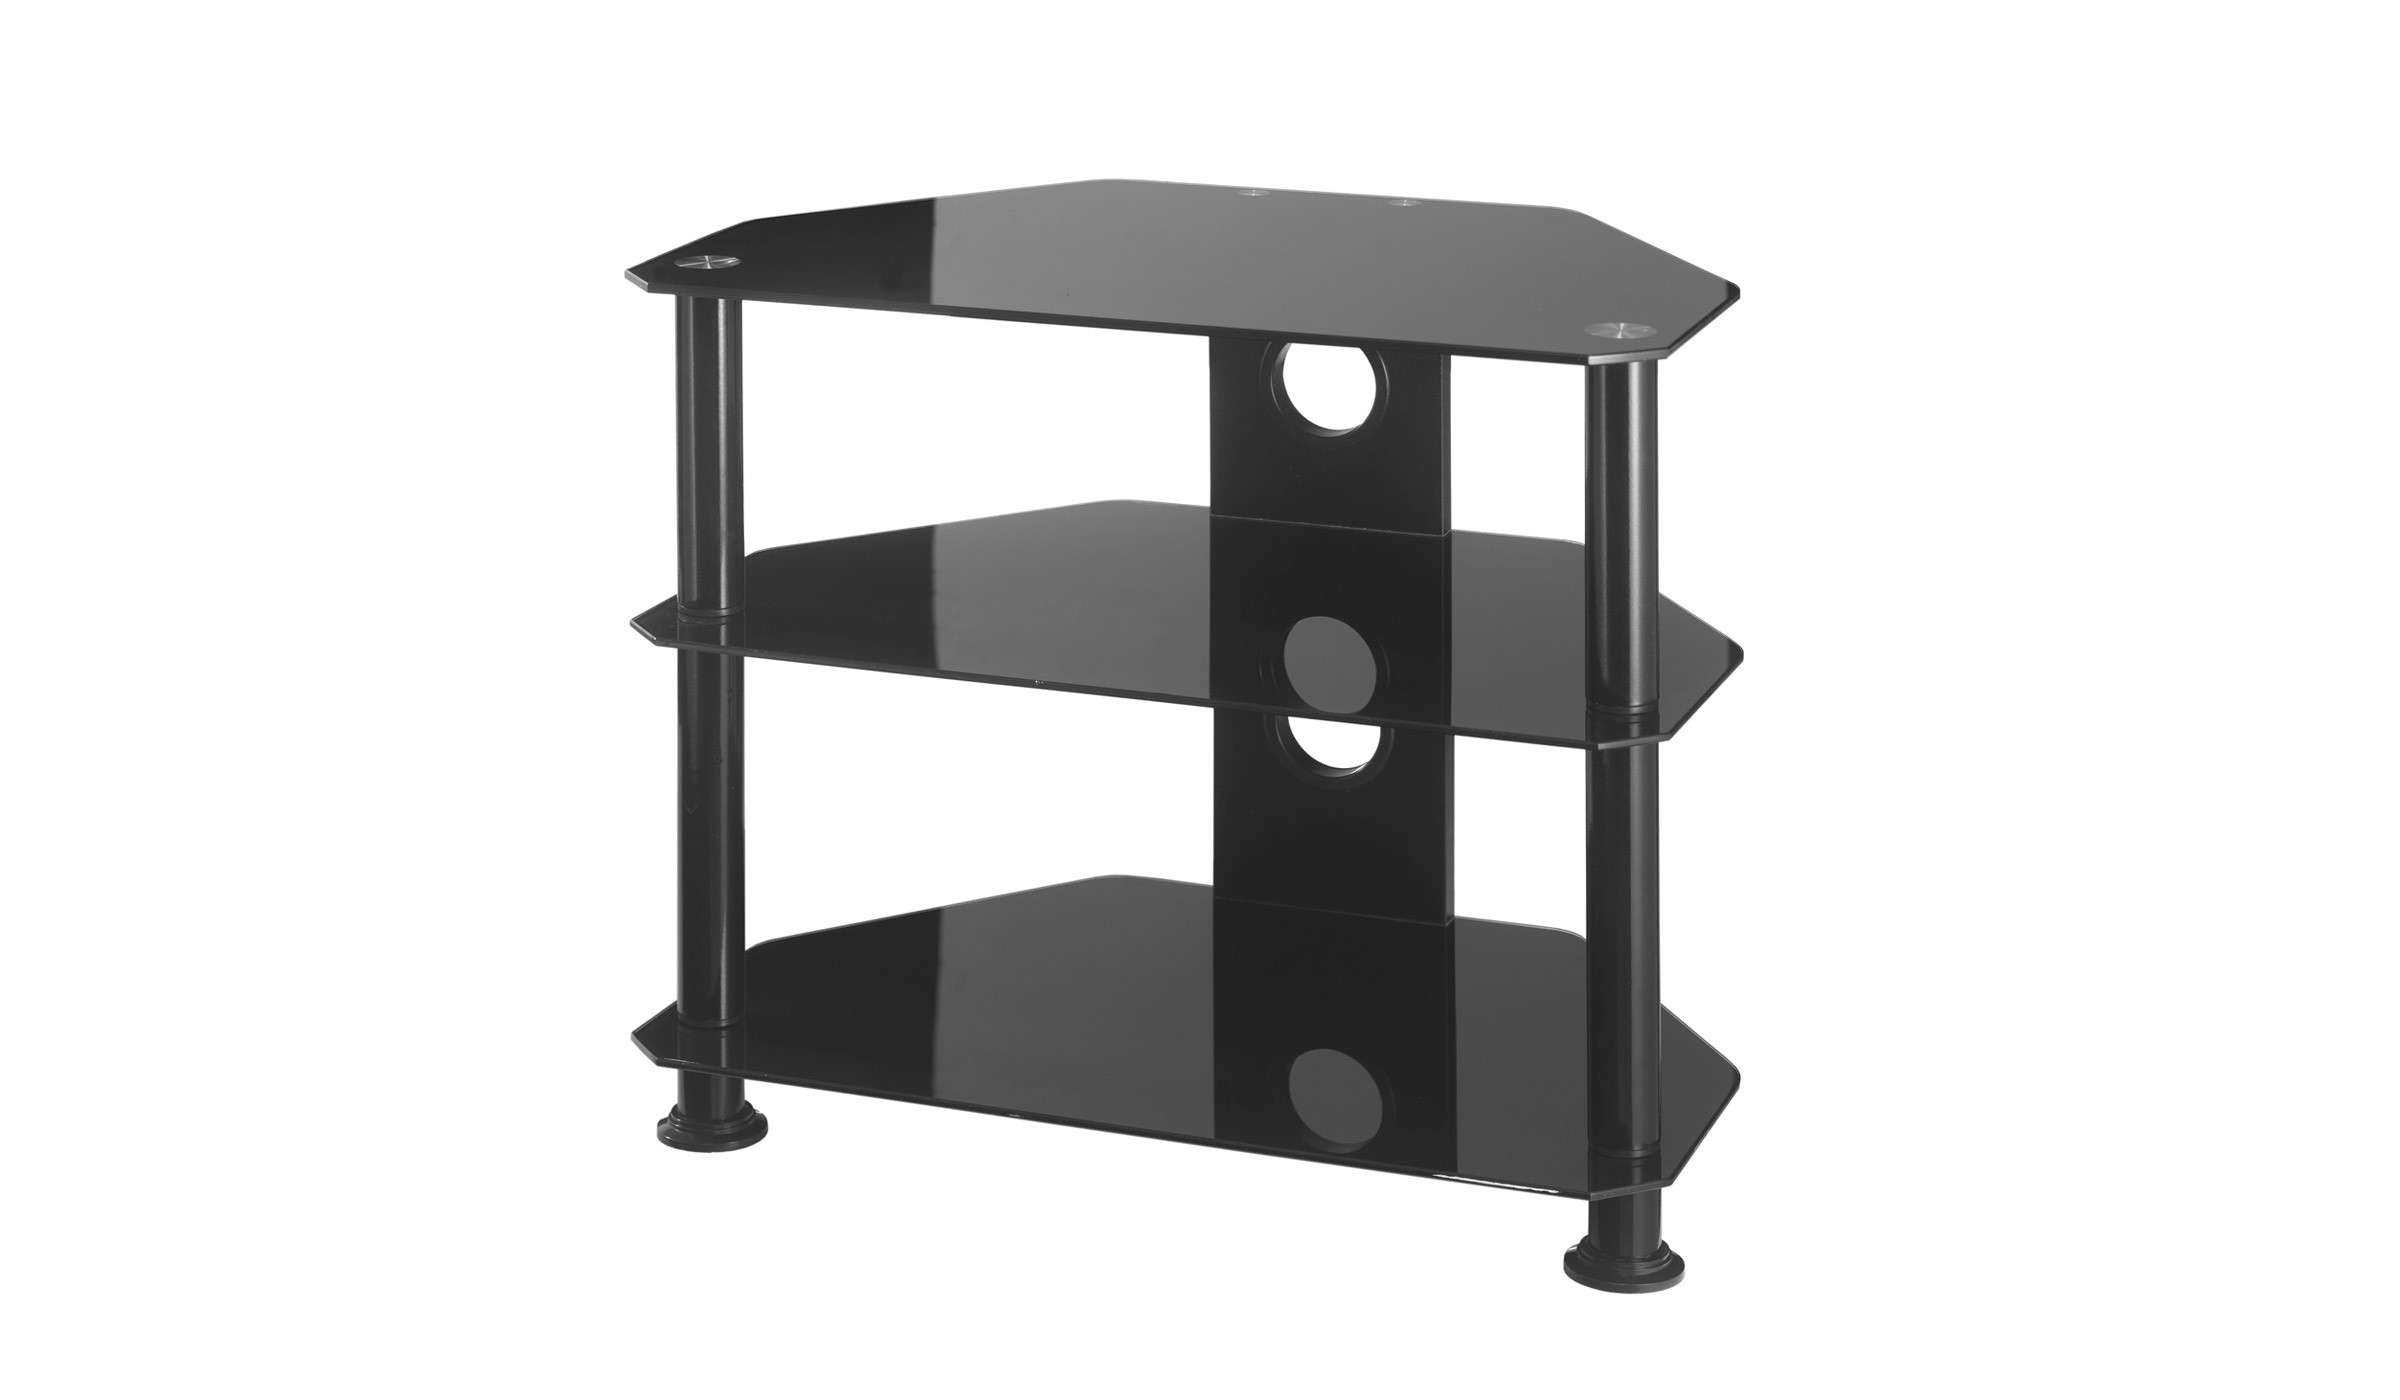 Small Glass Corner Tv Stand Up To 26 Inch Tv | Mmt Db600 In Black Wood Corner Tv Stands (View 14 of 15)